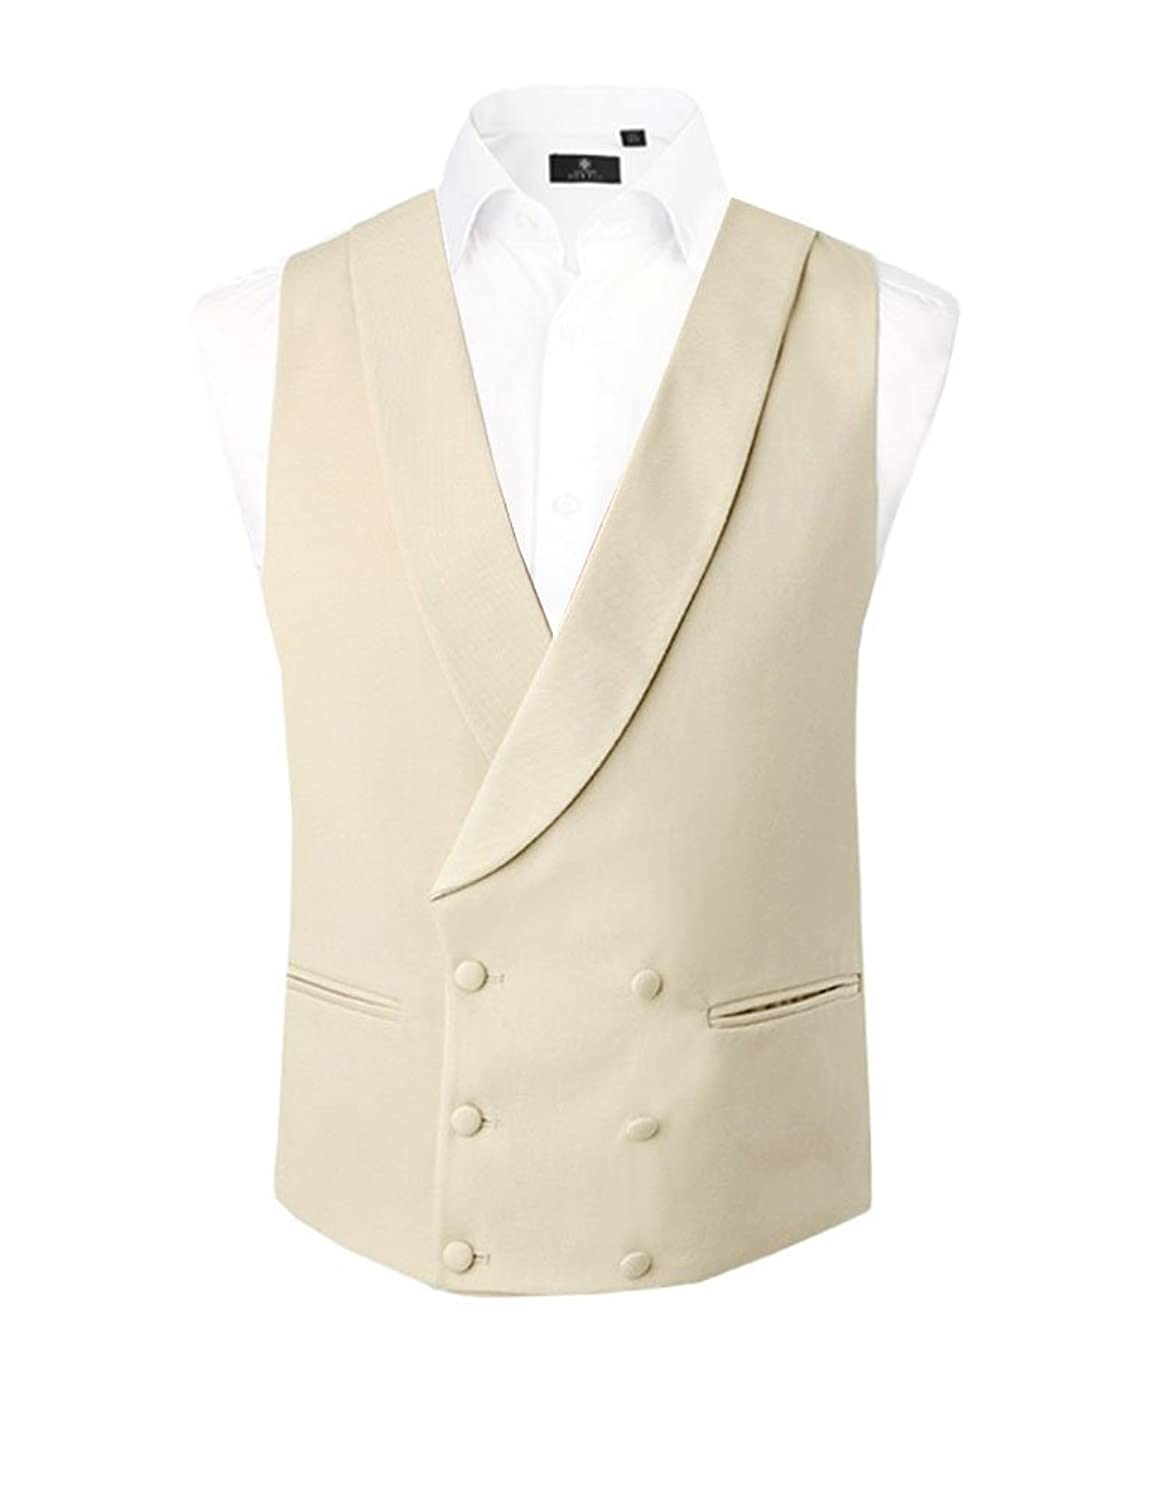 Edwardian Men's Formal Wear Mens Gold/Buff Double Breasted Shawl Lapel Morning Suit Waistcoat £39.99 AT vintagedancer.com